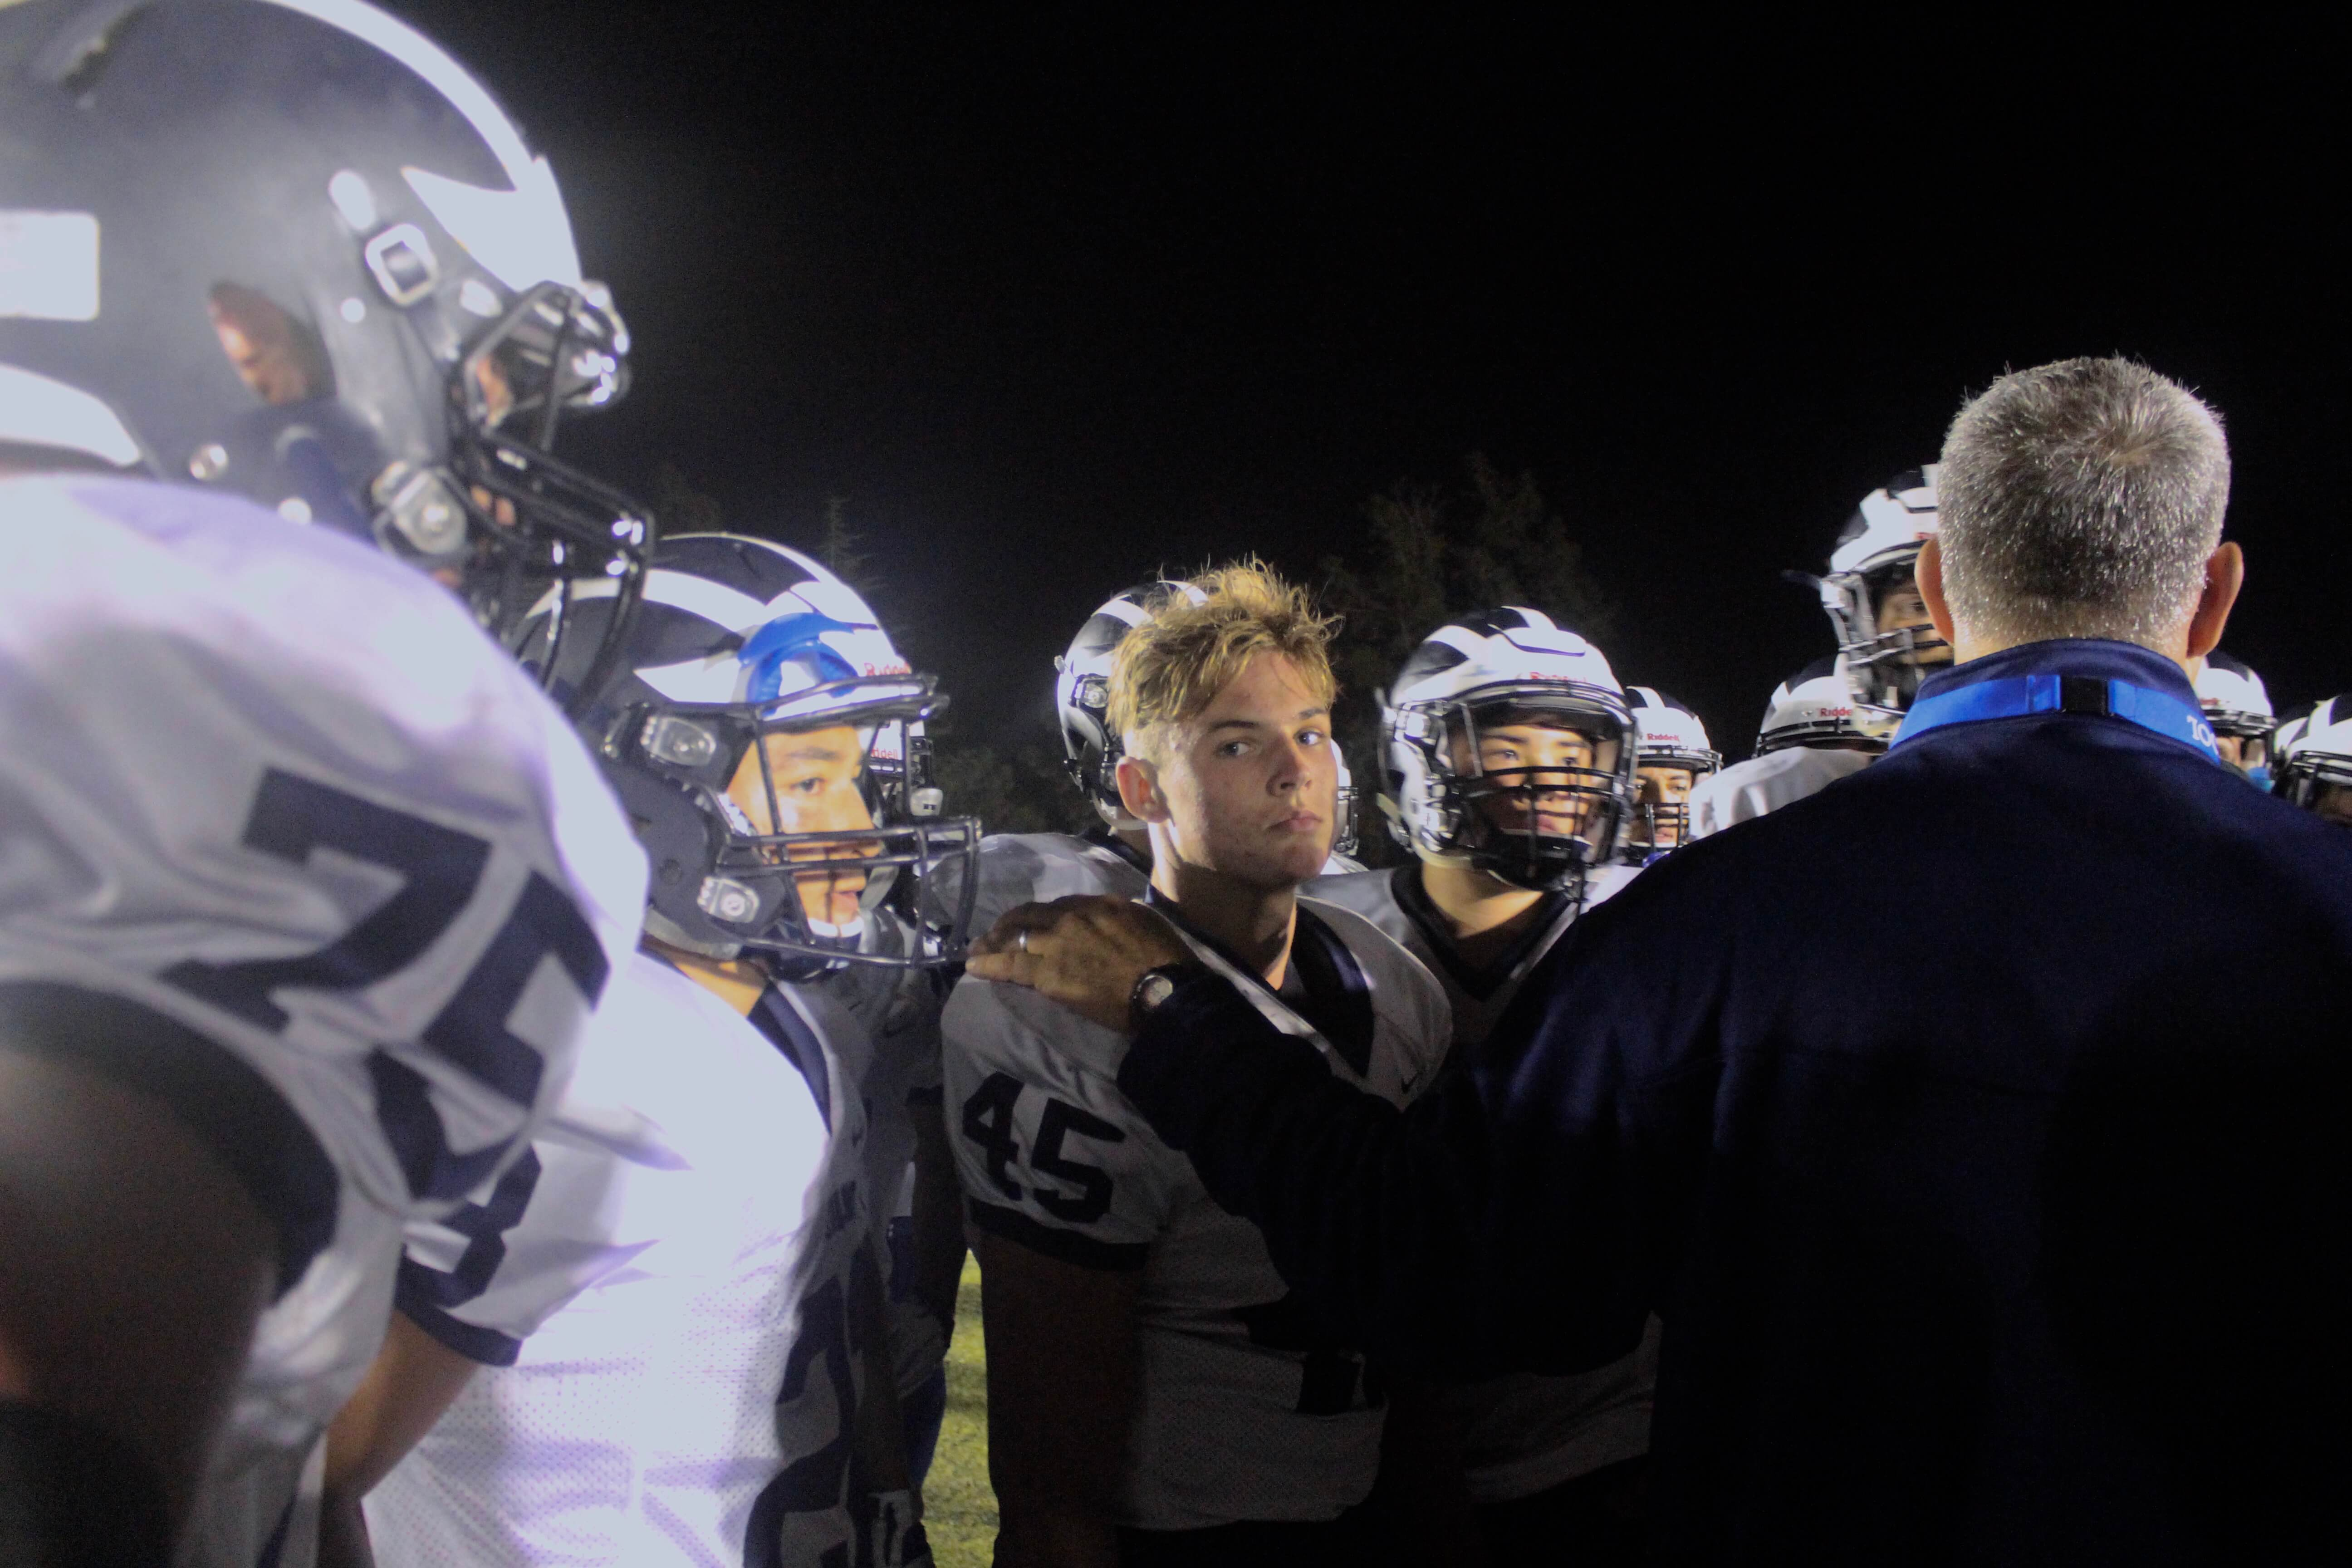 Coach+Jake+Messina%27s+hand+rests+Junior+Brett+O%27Connor%27s+shoulder+as+the+team+comes+in+a+huddle+after+the+game+concluded.